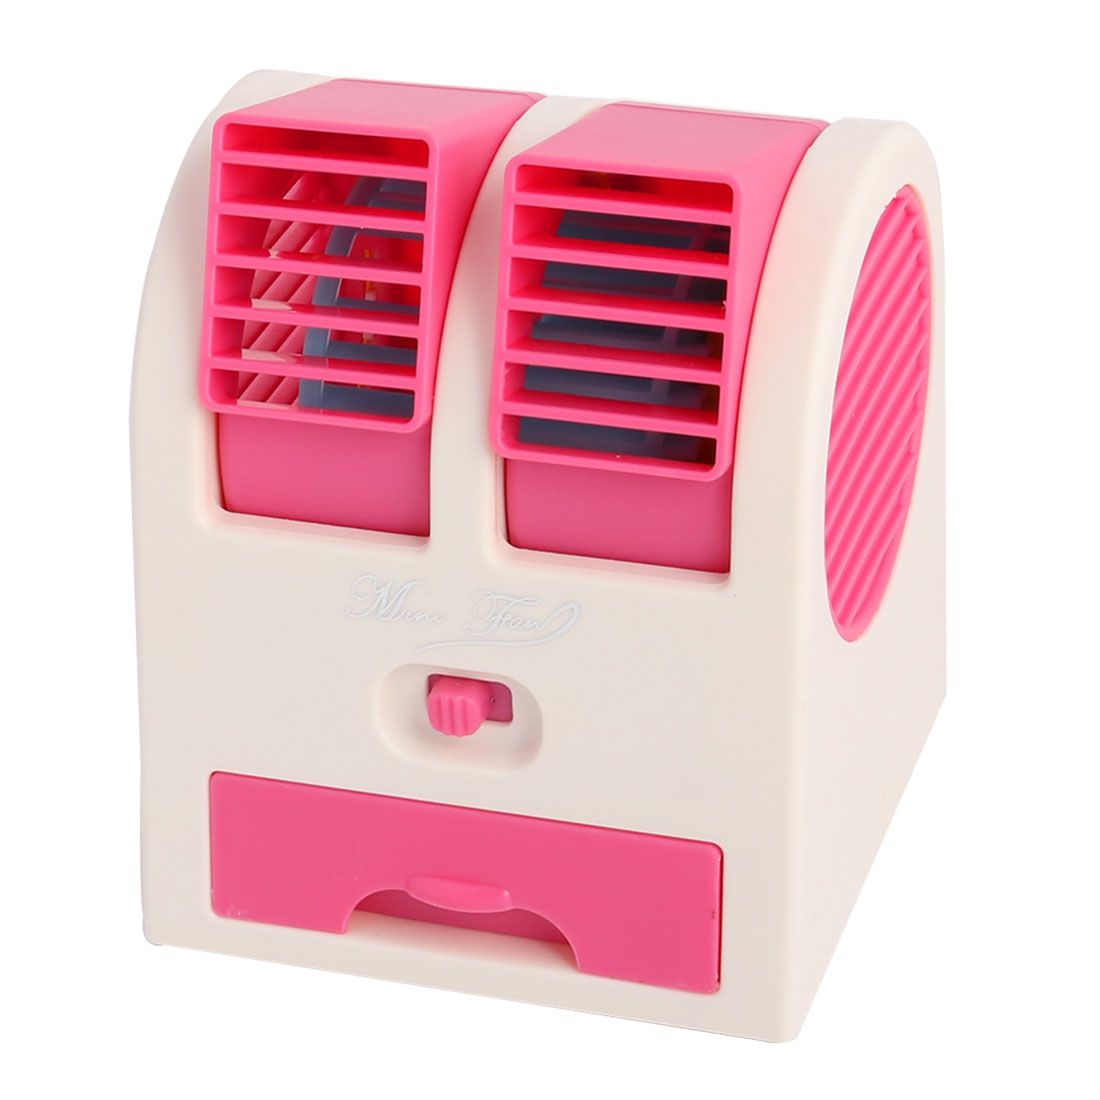 Portable Office Bladeless Cooling USB Battery Powered Personal Mini Fan